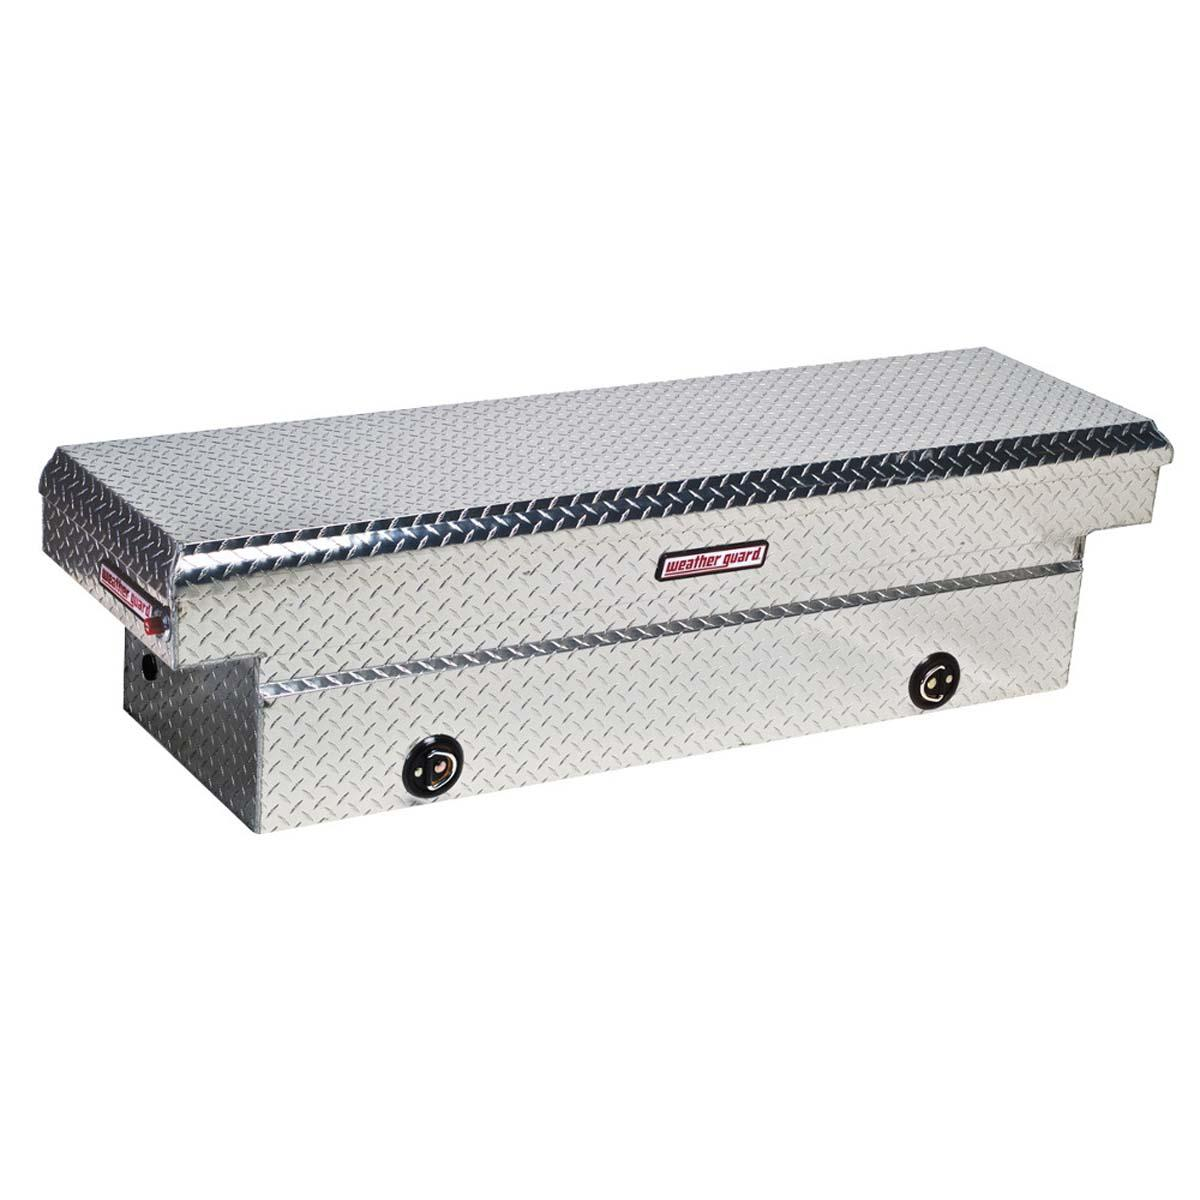 Saddle Box - Aluminum